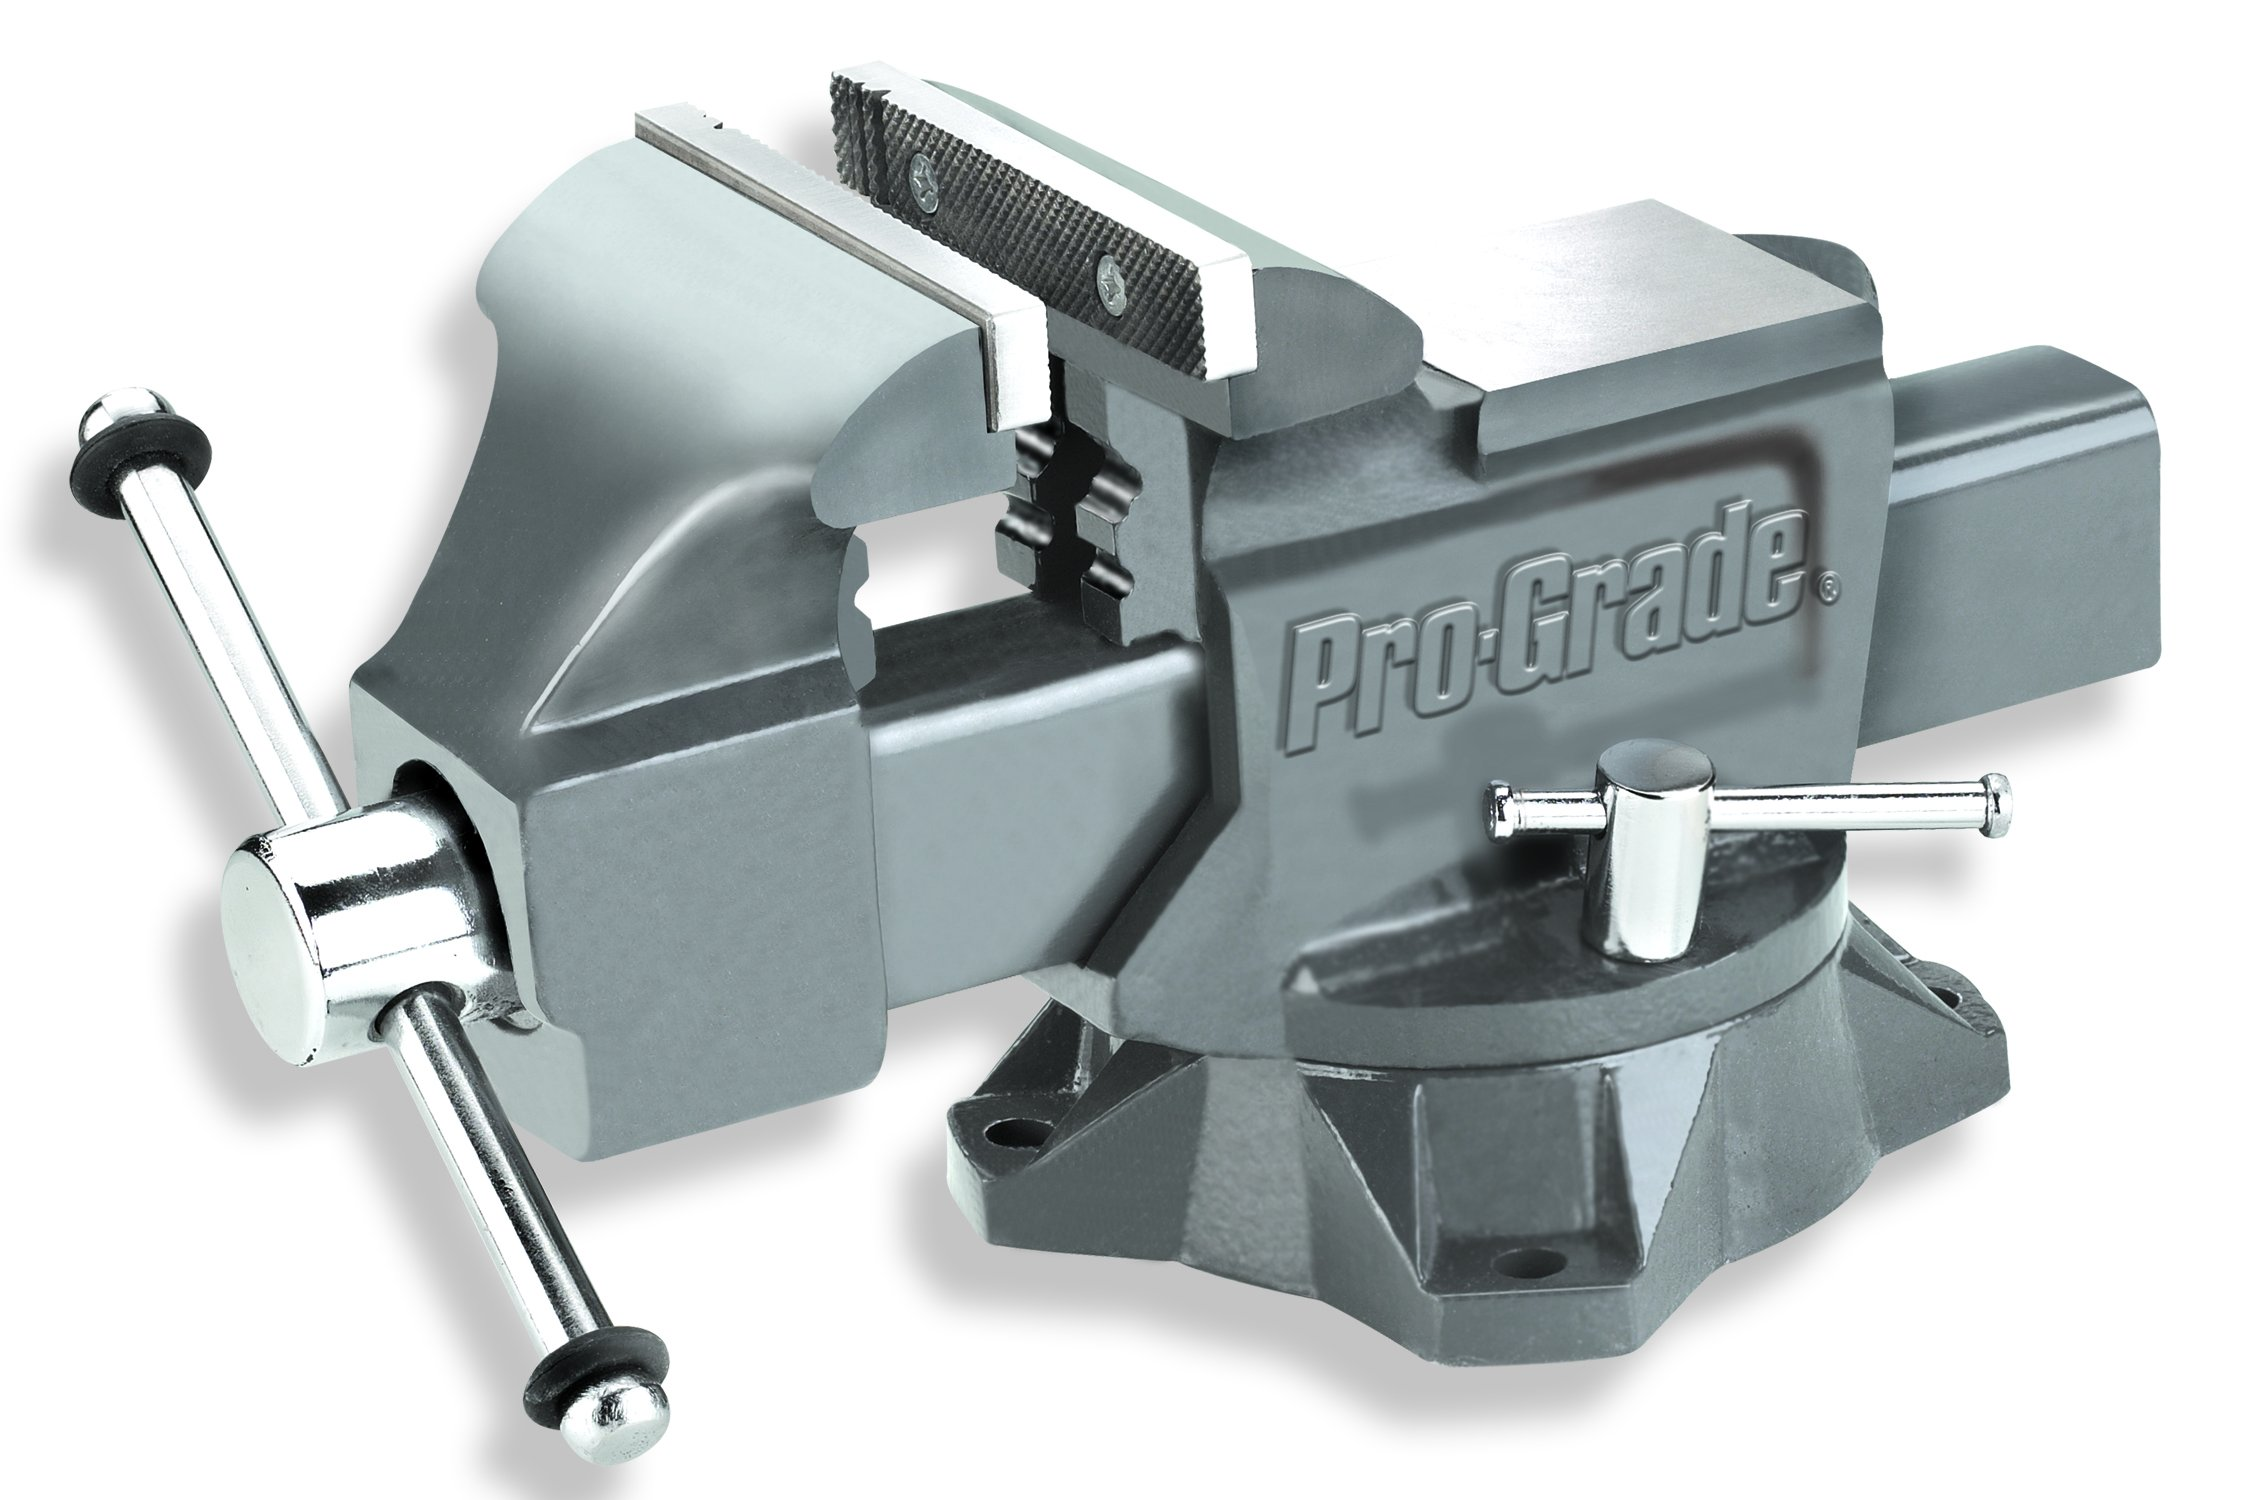 Pro-Grade 59116 Heavy Duty Swivel Bench Vice, 7-Inch